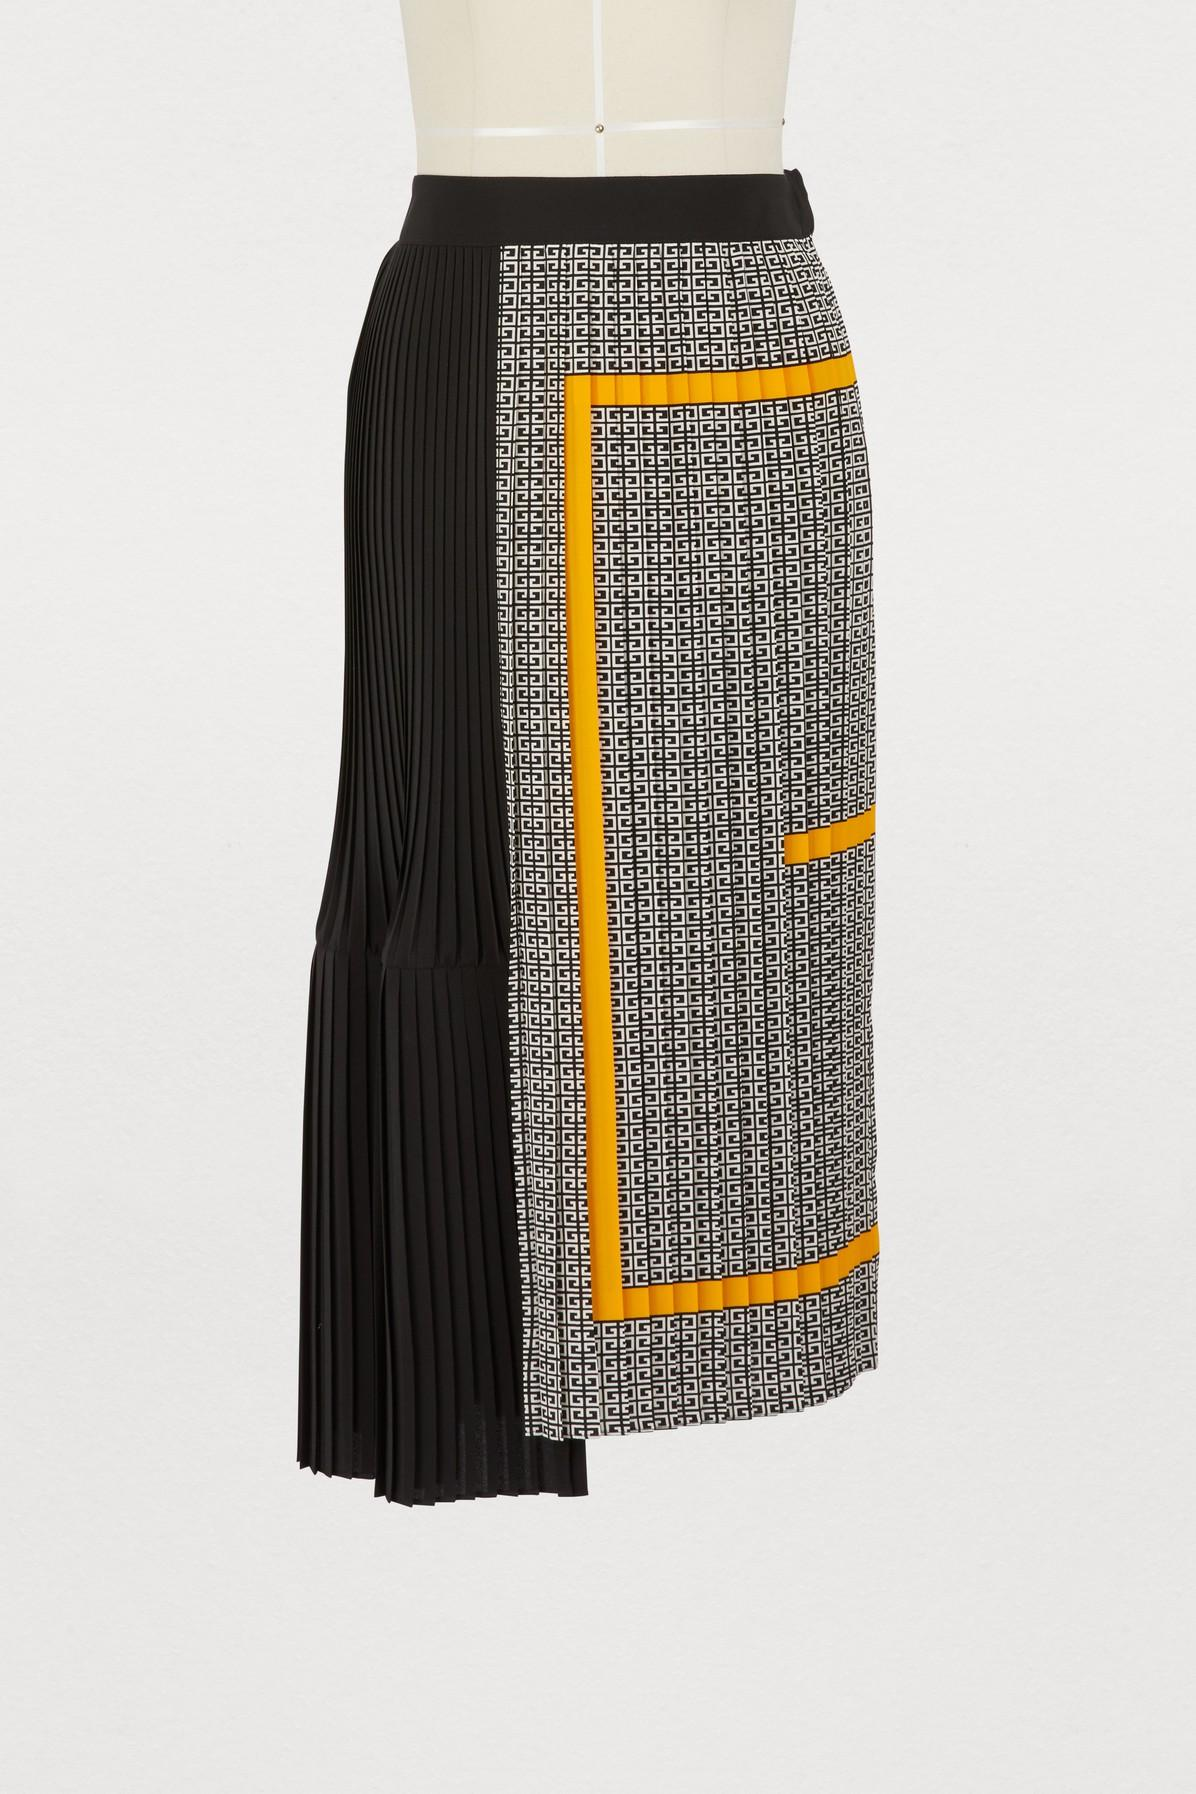 Givenchy Pleated Printed Silk Crepe De Chine Midi Skirt In Black Yellow